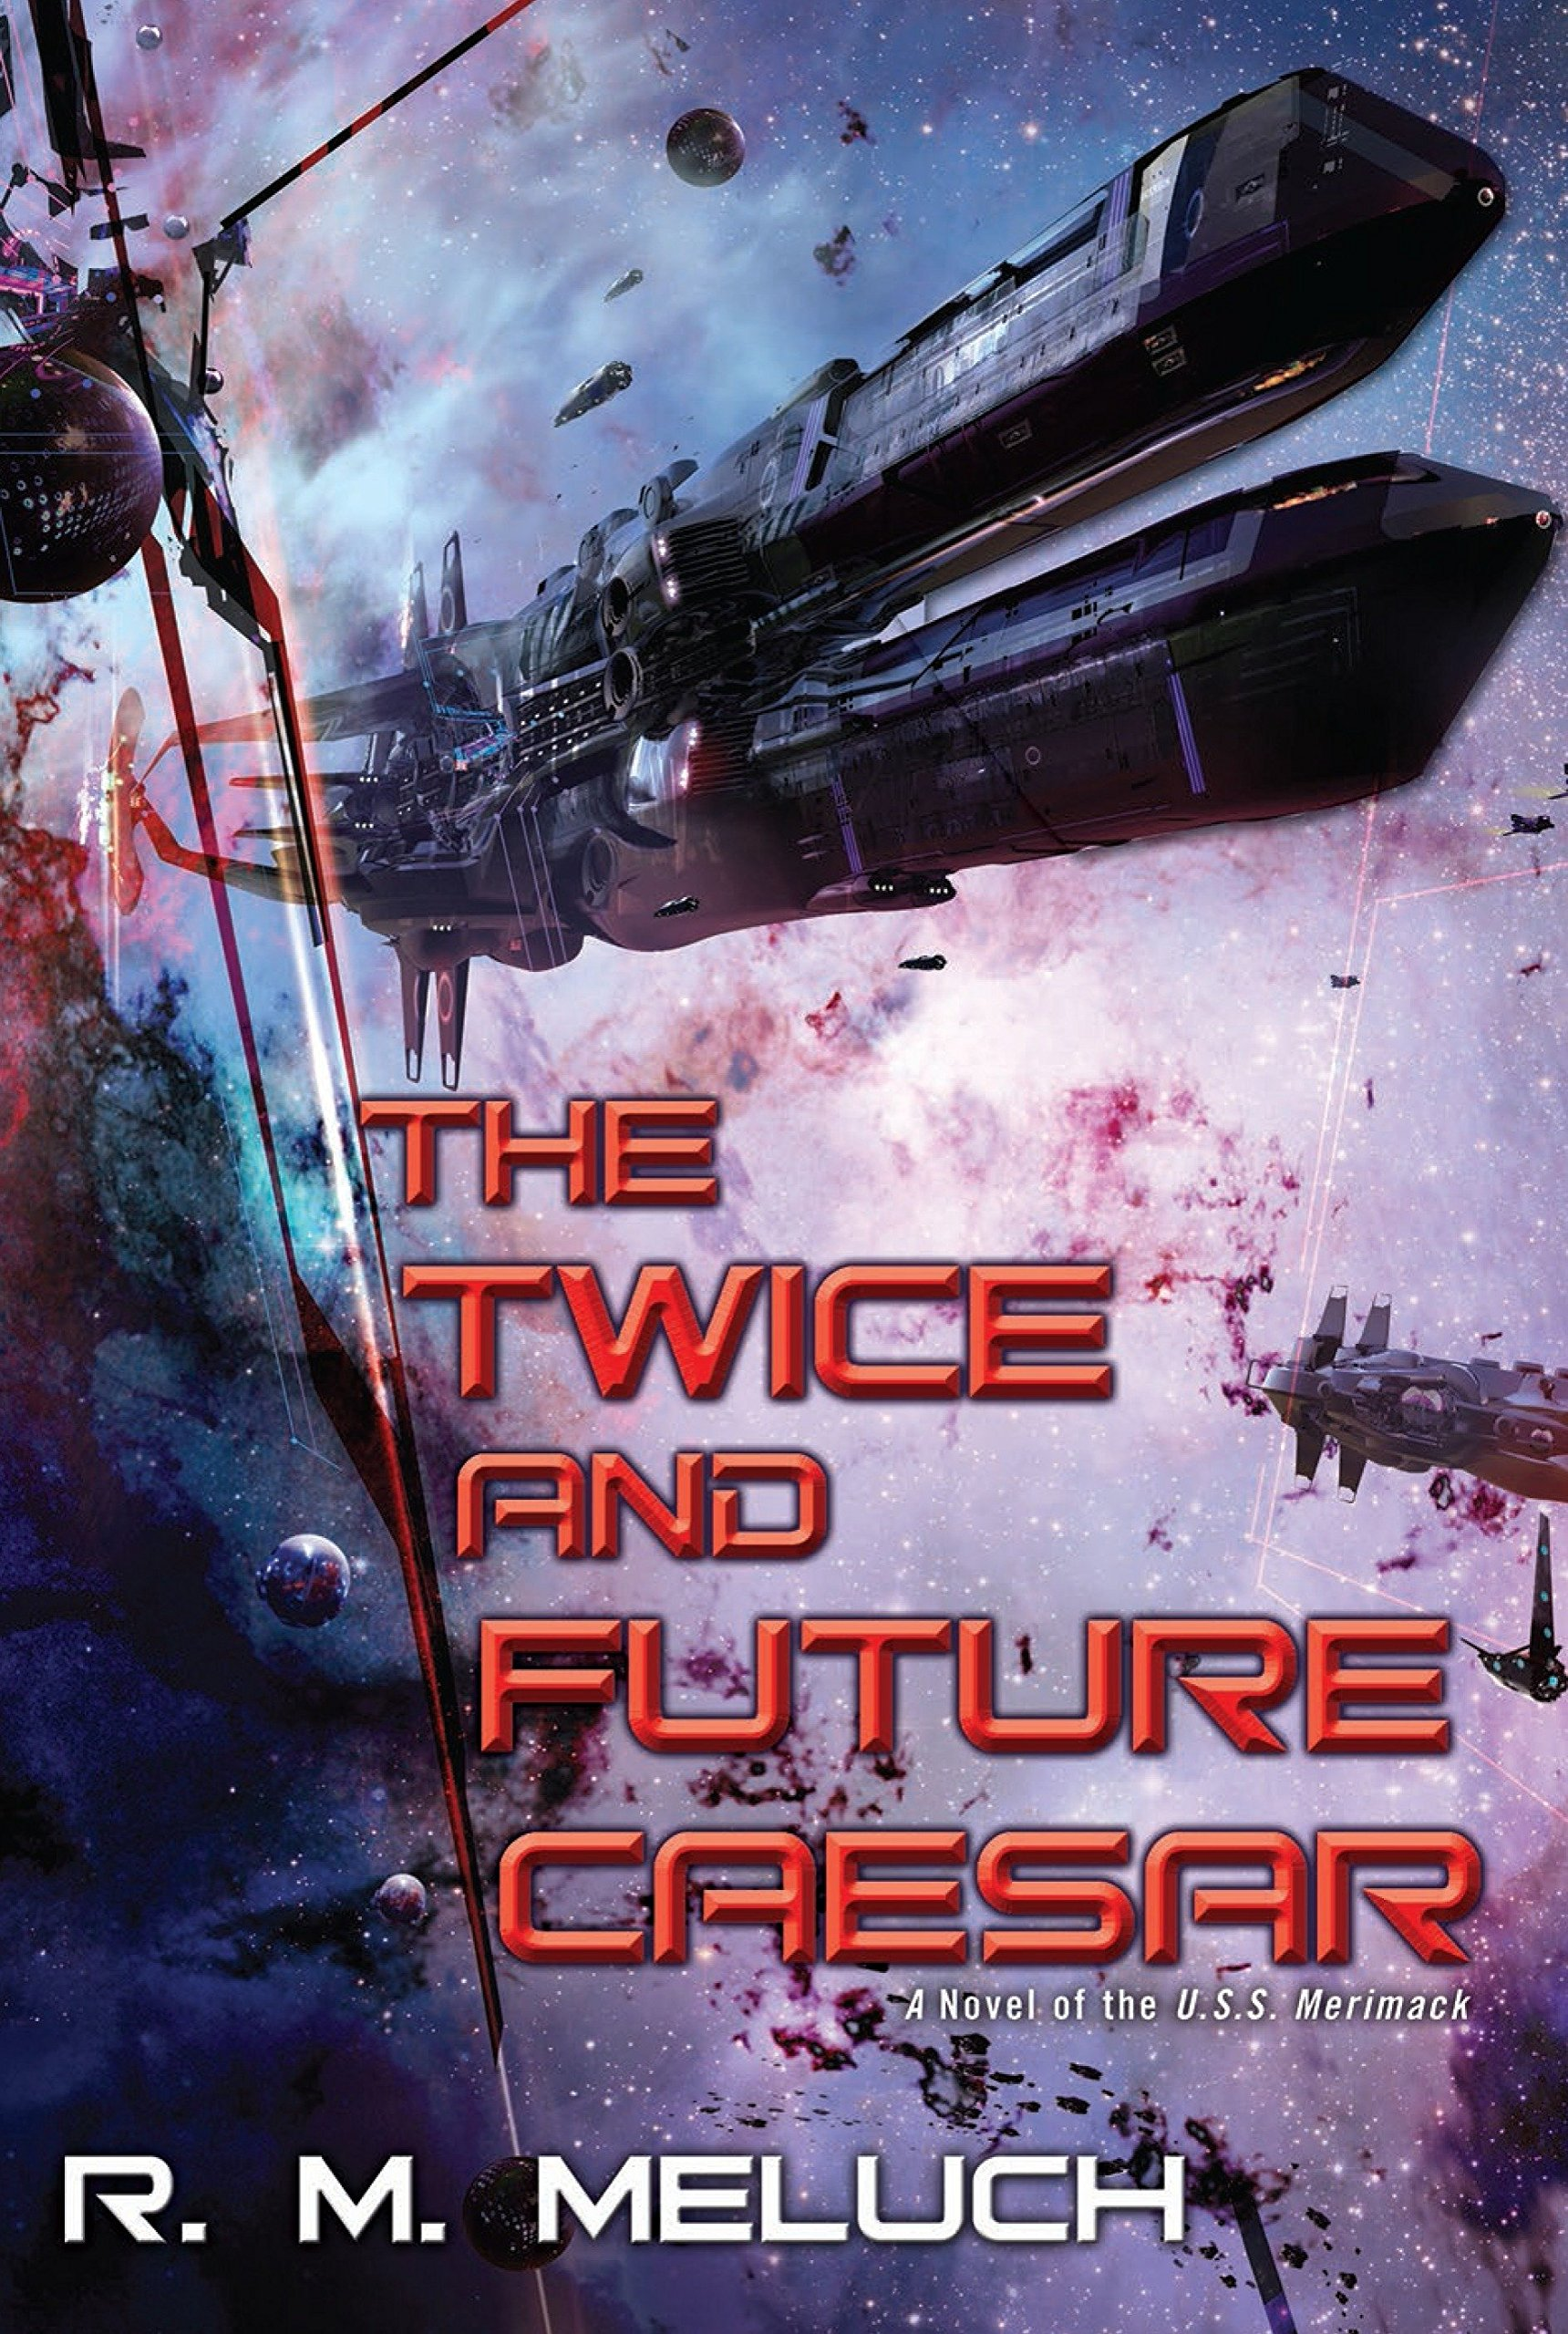 Read Online The Twice and Future Caesar (Tour of the Merrimack) PDF